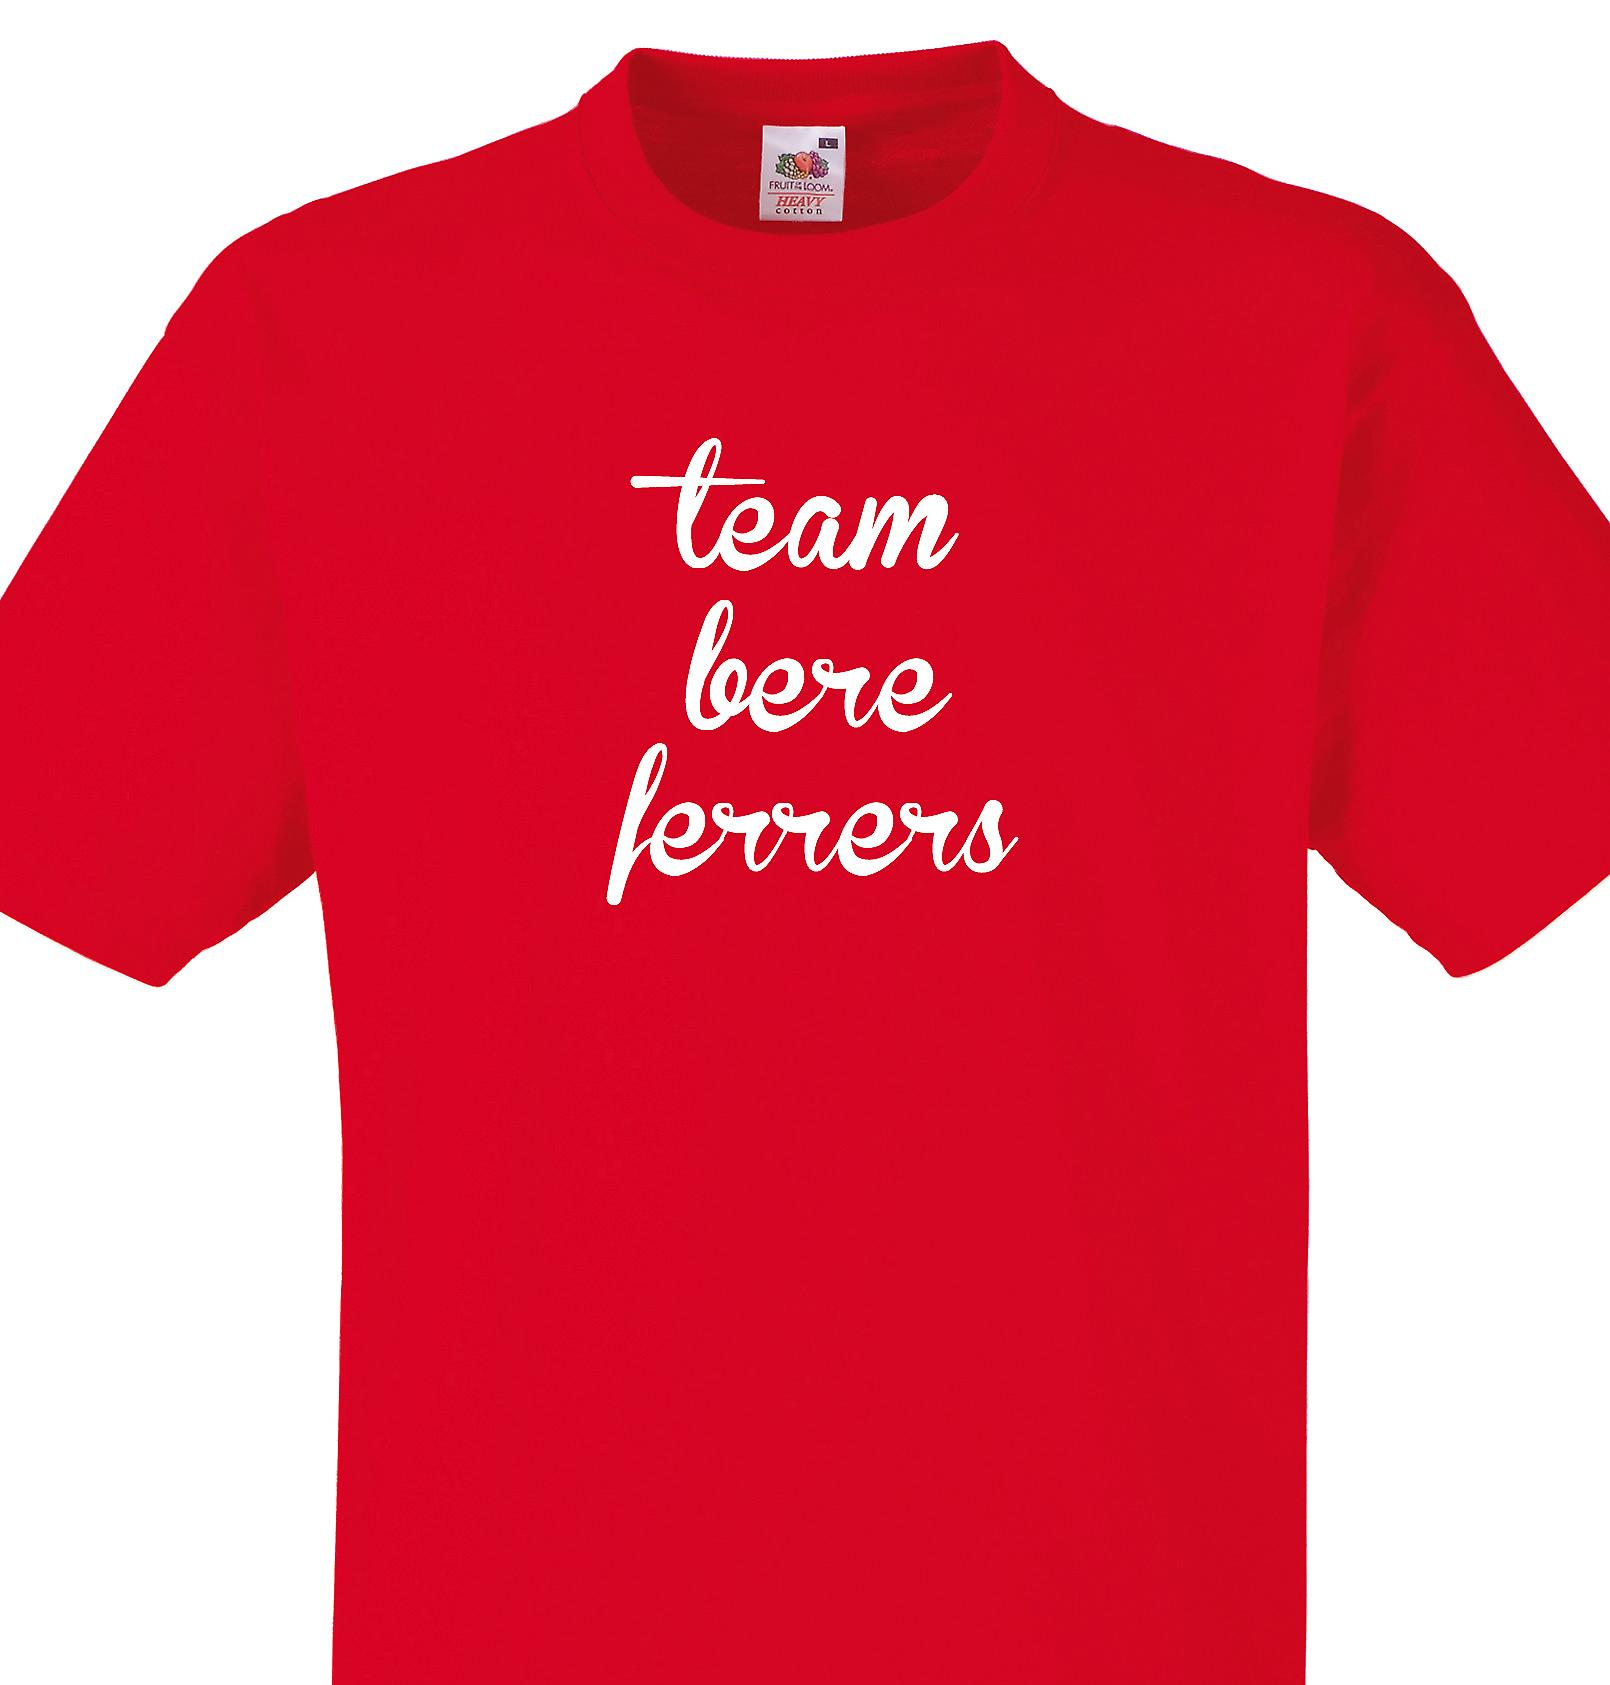 Team Bere ferrers Red T shirt